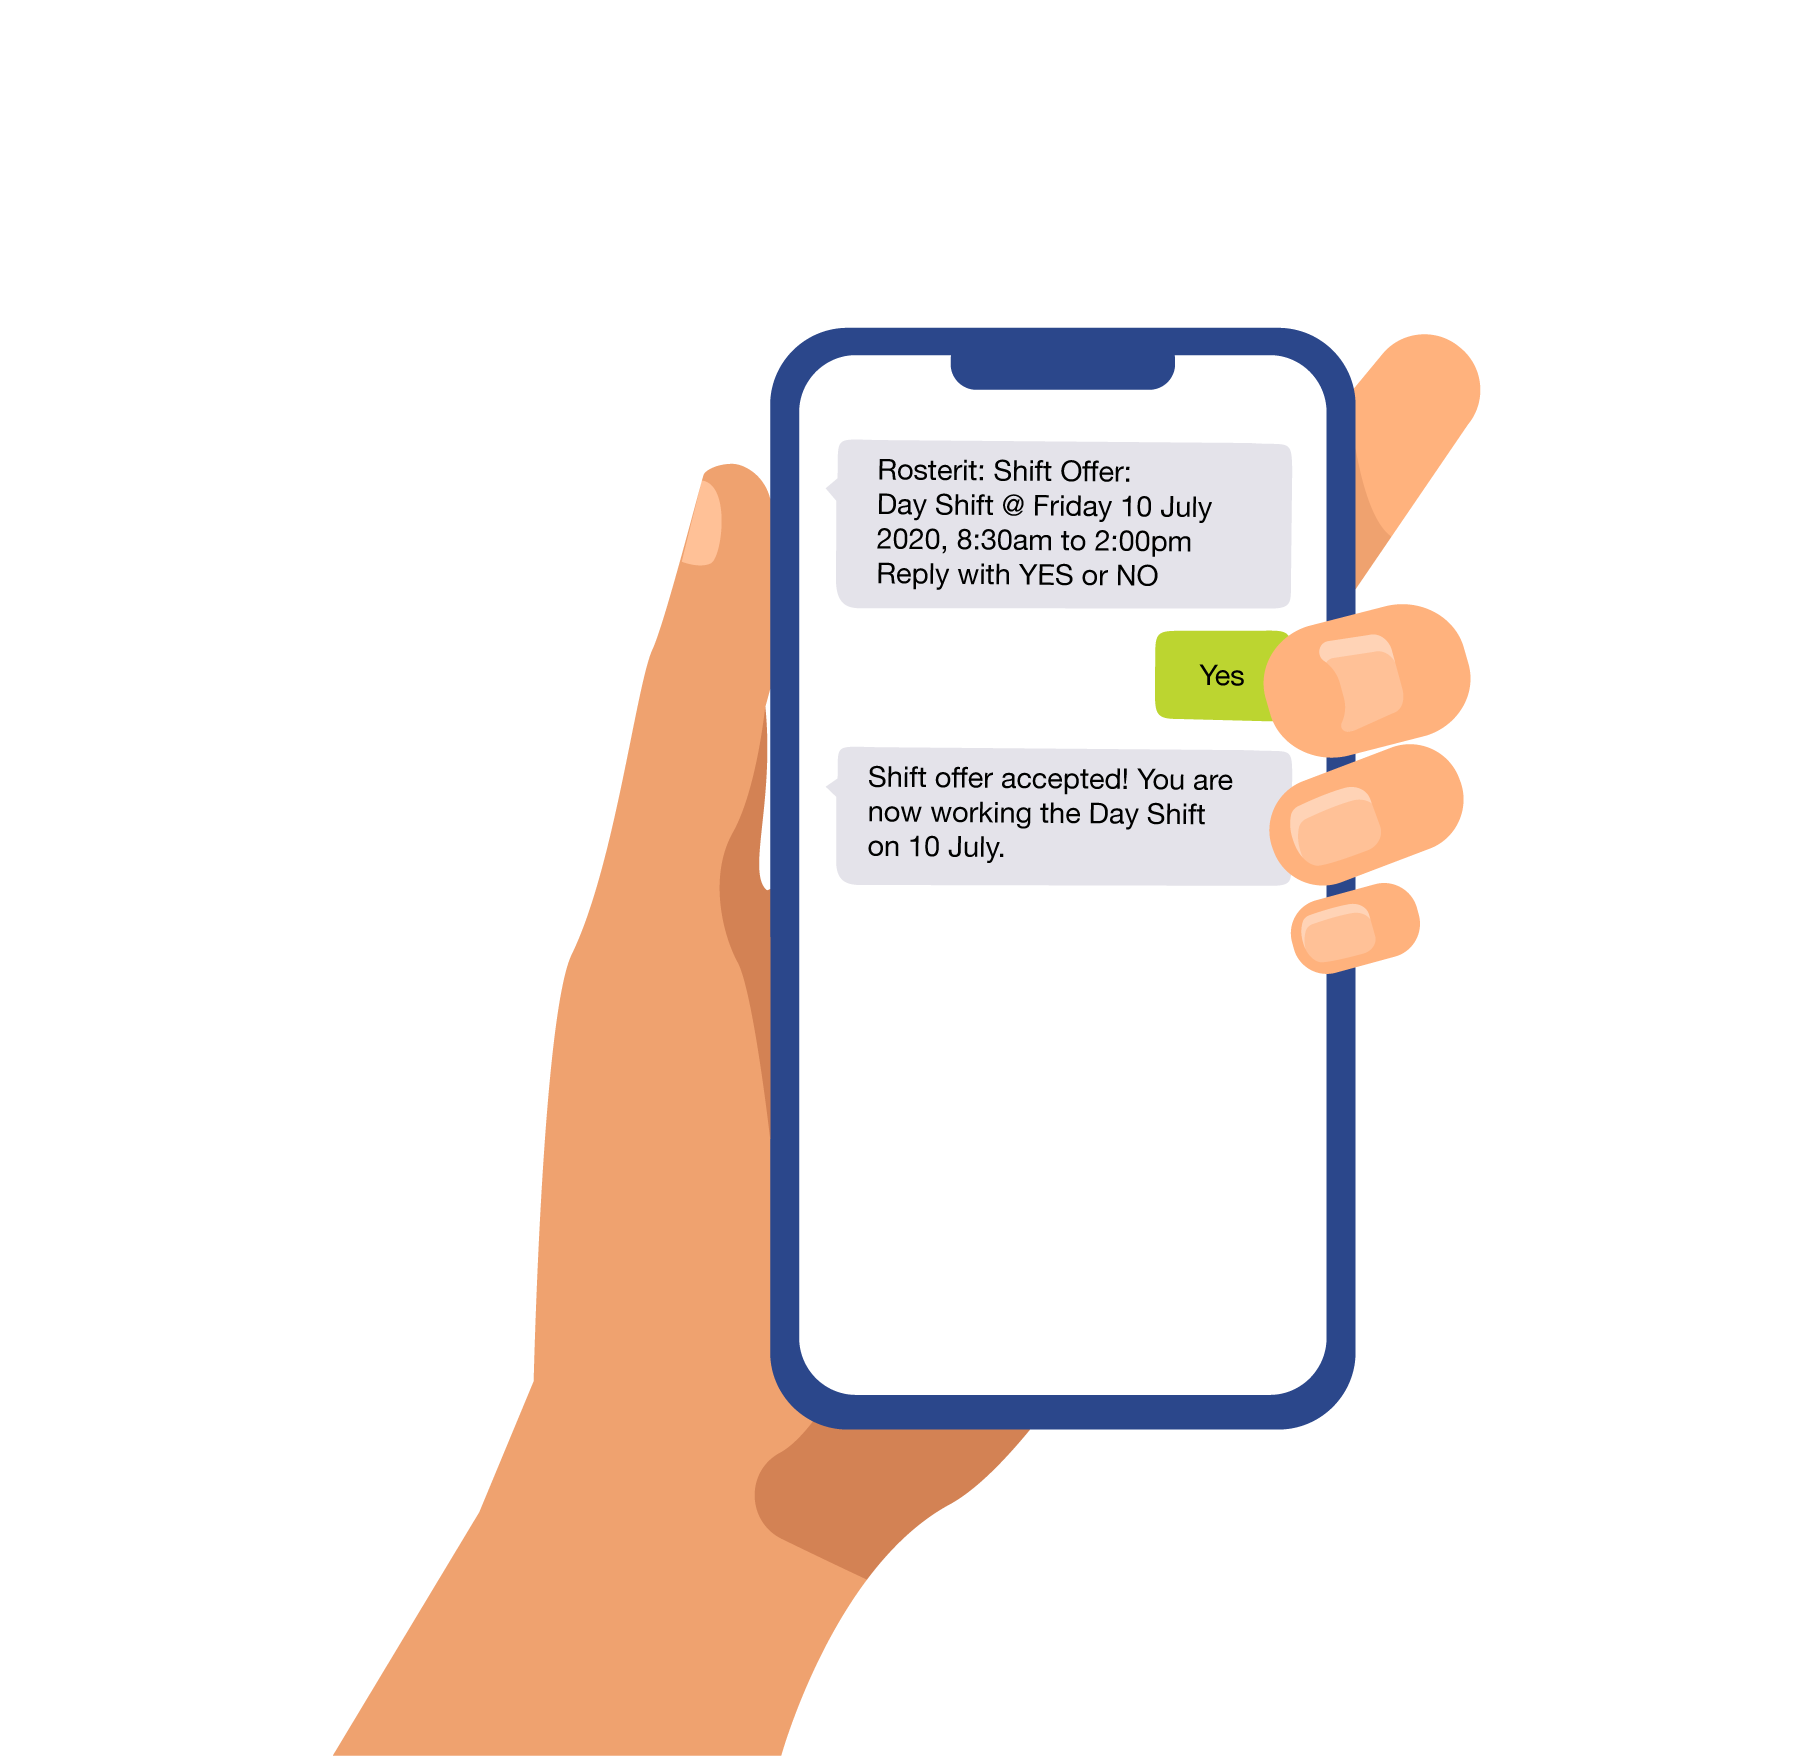 illustration of hand holding mobile phone with text messages